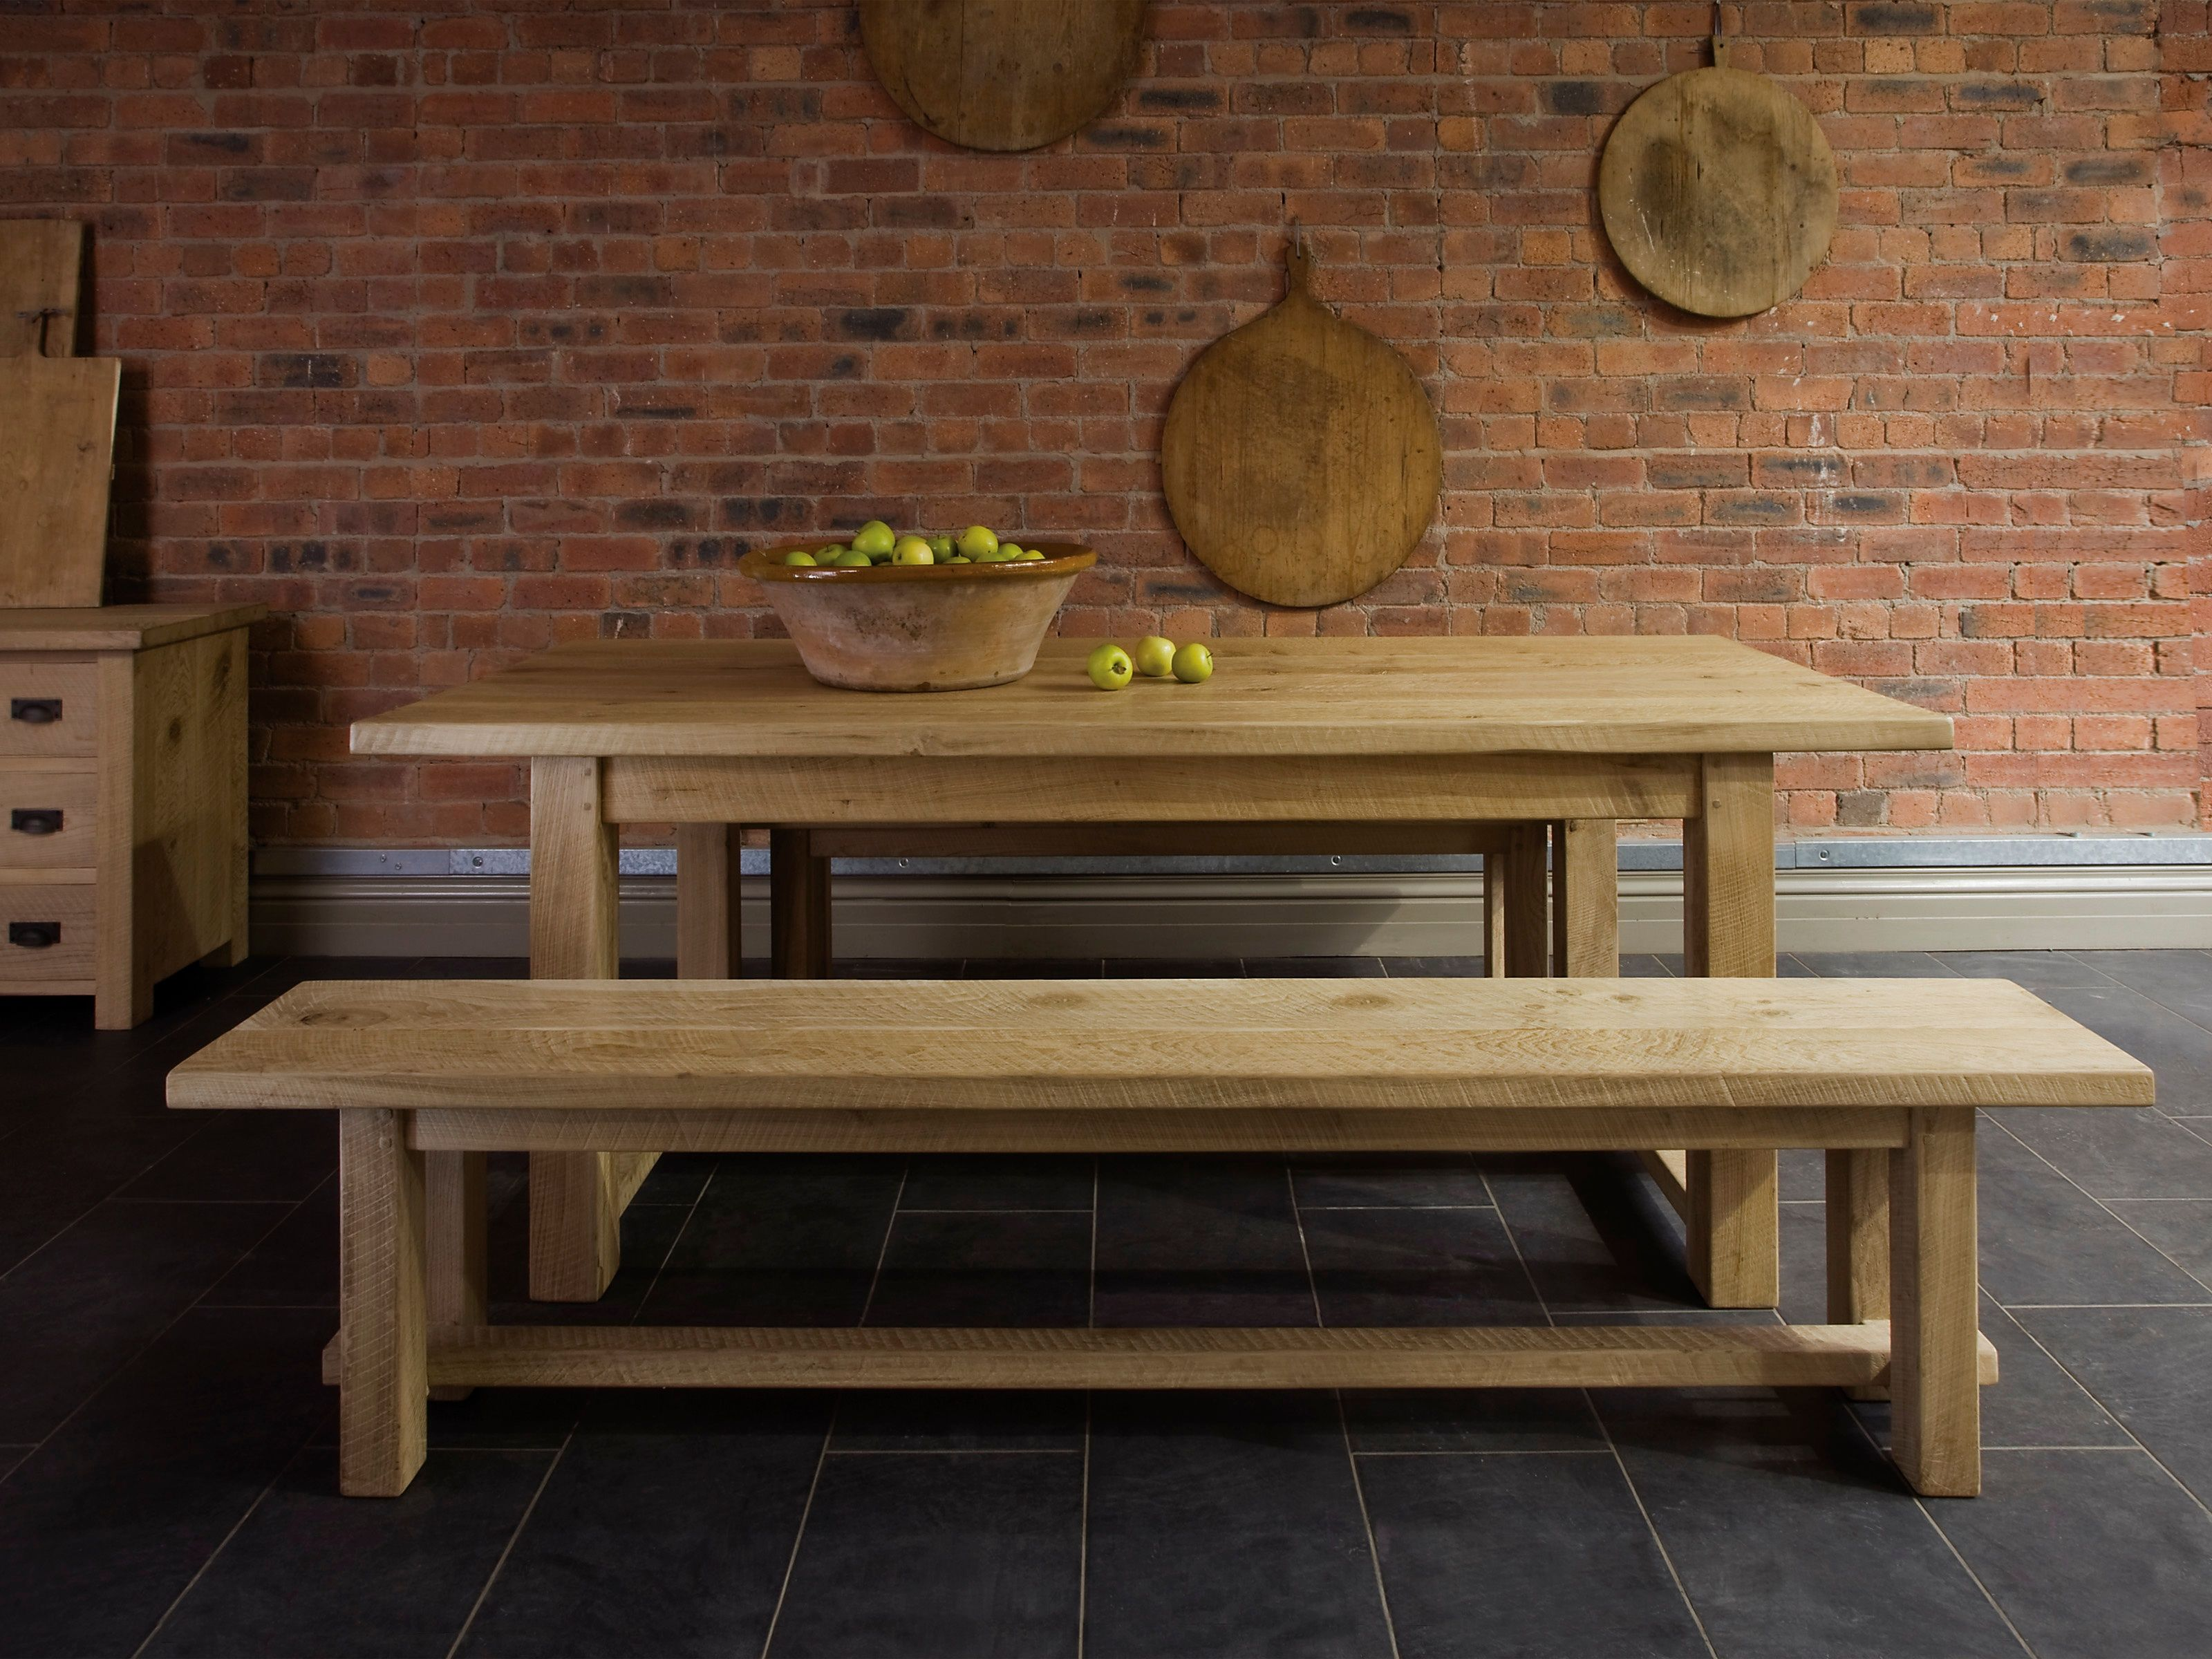 Italian Farmhouse Kitchen Table Image Of On Ideas Gallery Rustic With